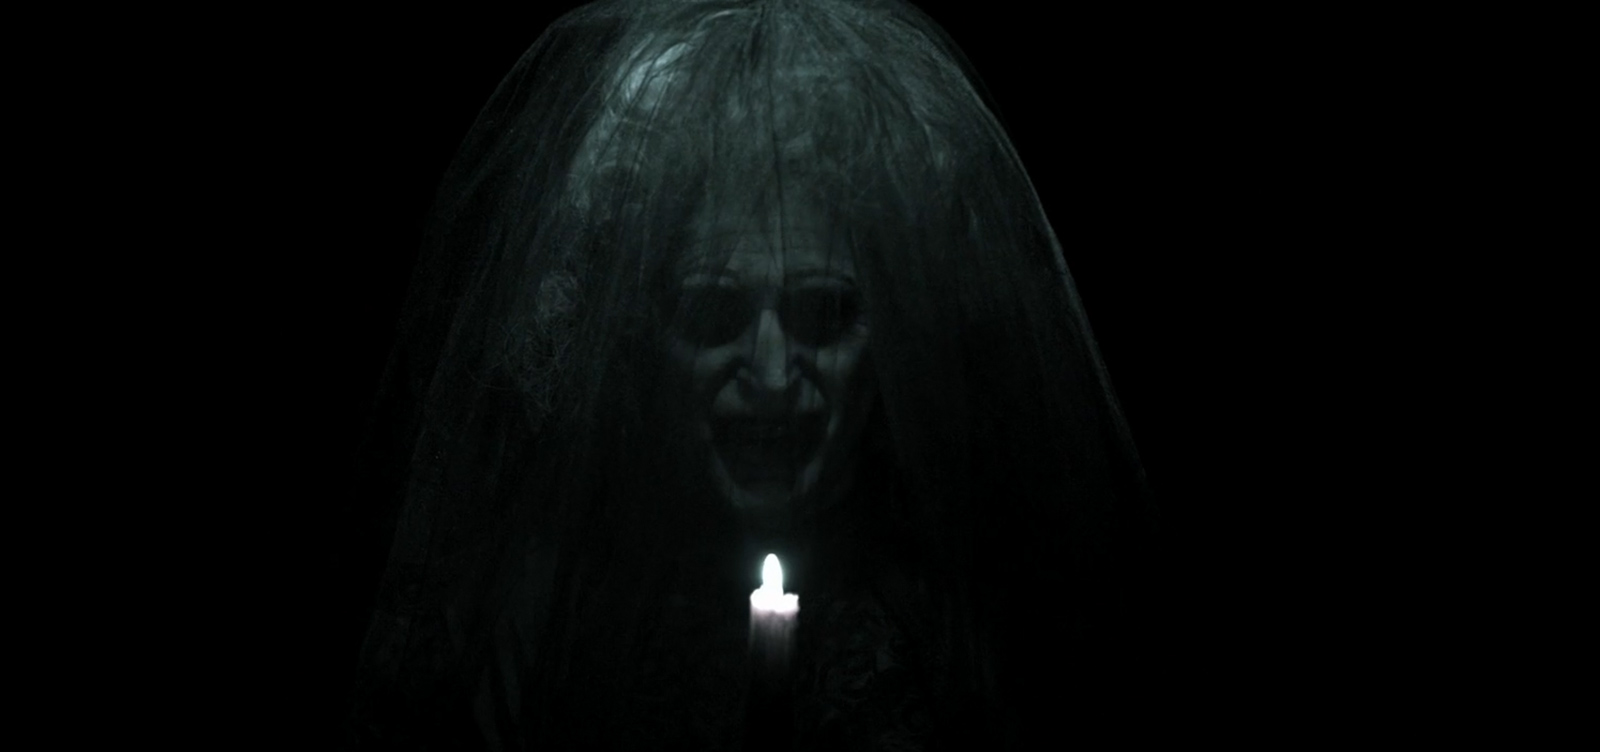 Insidious Horror Land Horror Entertainment Articles And Videos